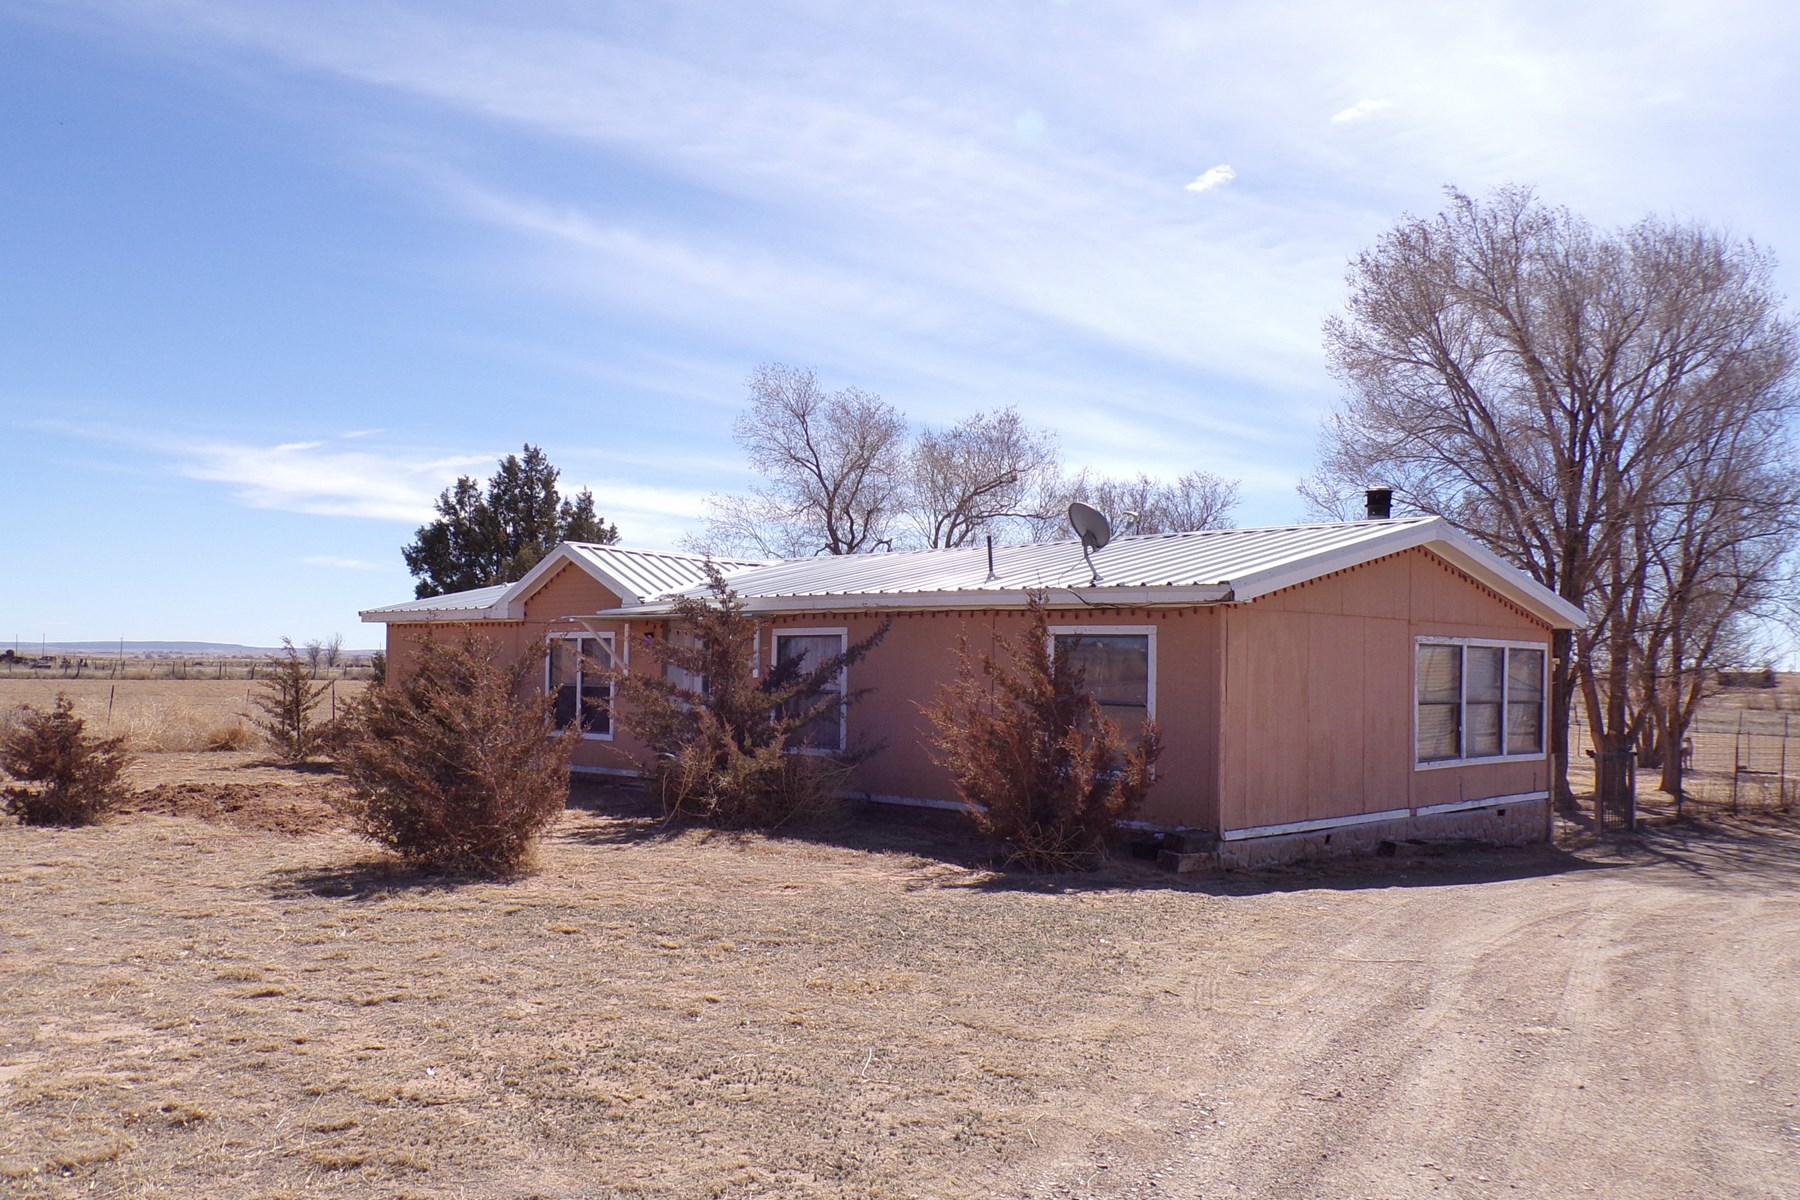 Country Home For Sale near Moriarty NM Family Home